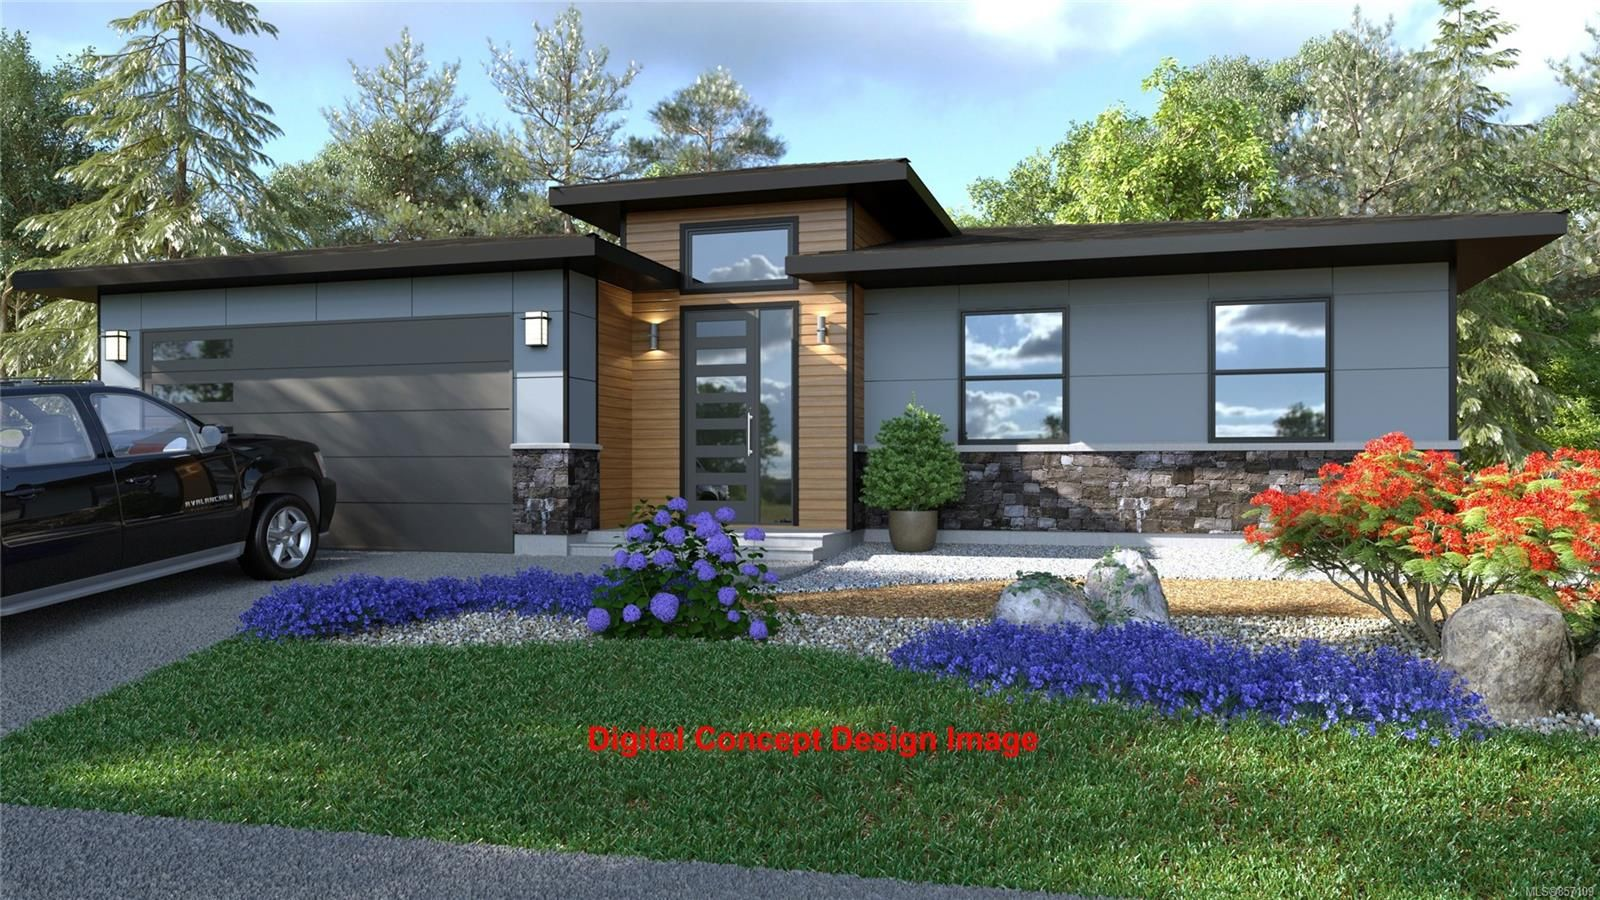 Main Photo: Lot 13 Viewtop Rd in : Du East Duncan House for sale (Duncan)  : MLS®# 857109